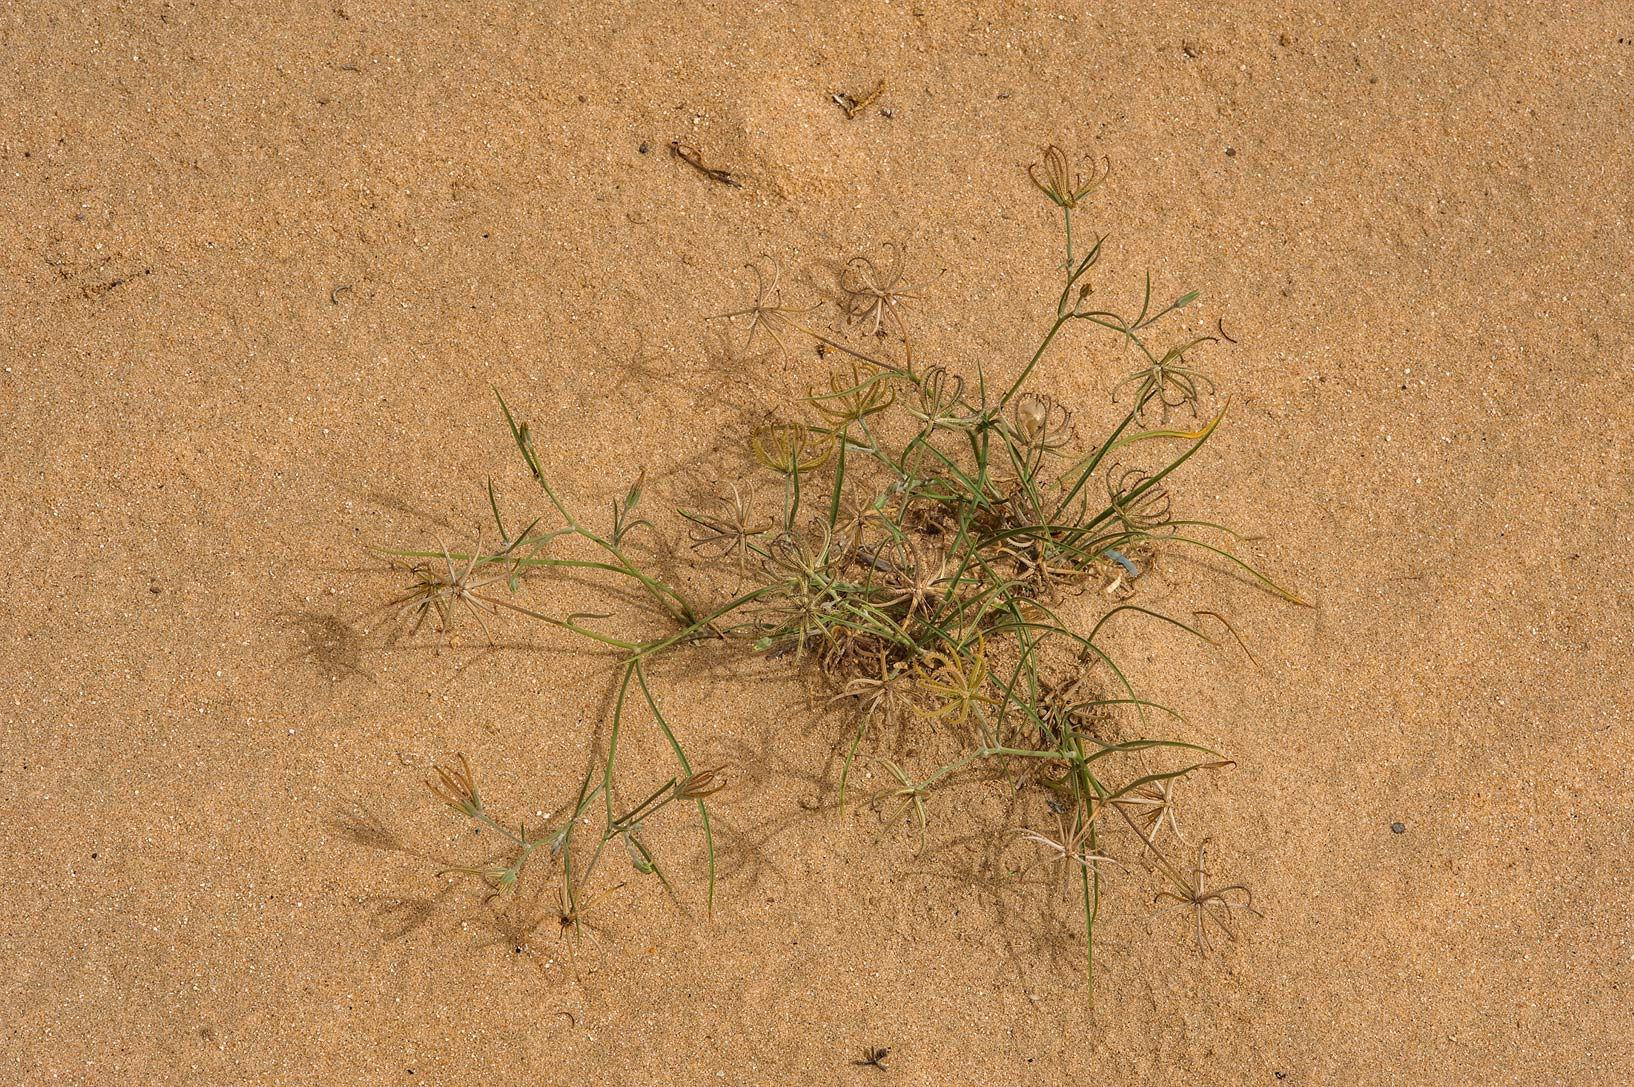 Rare plant Koelpinia linearis with seeds in...of Khashem Al Nekhsh. Southern Qatar